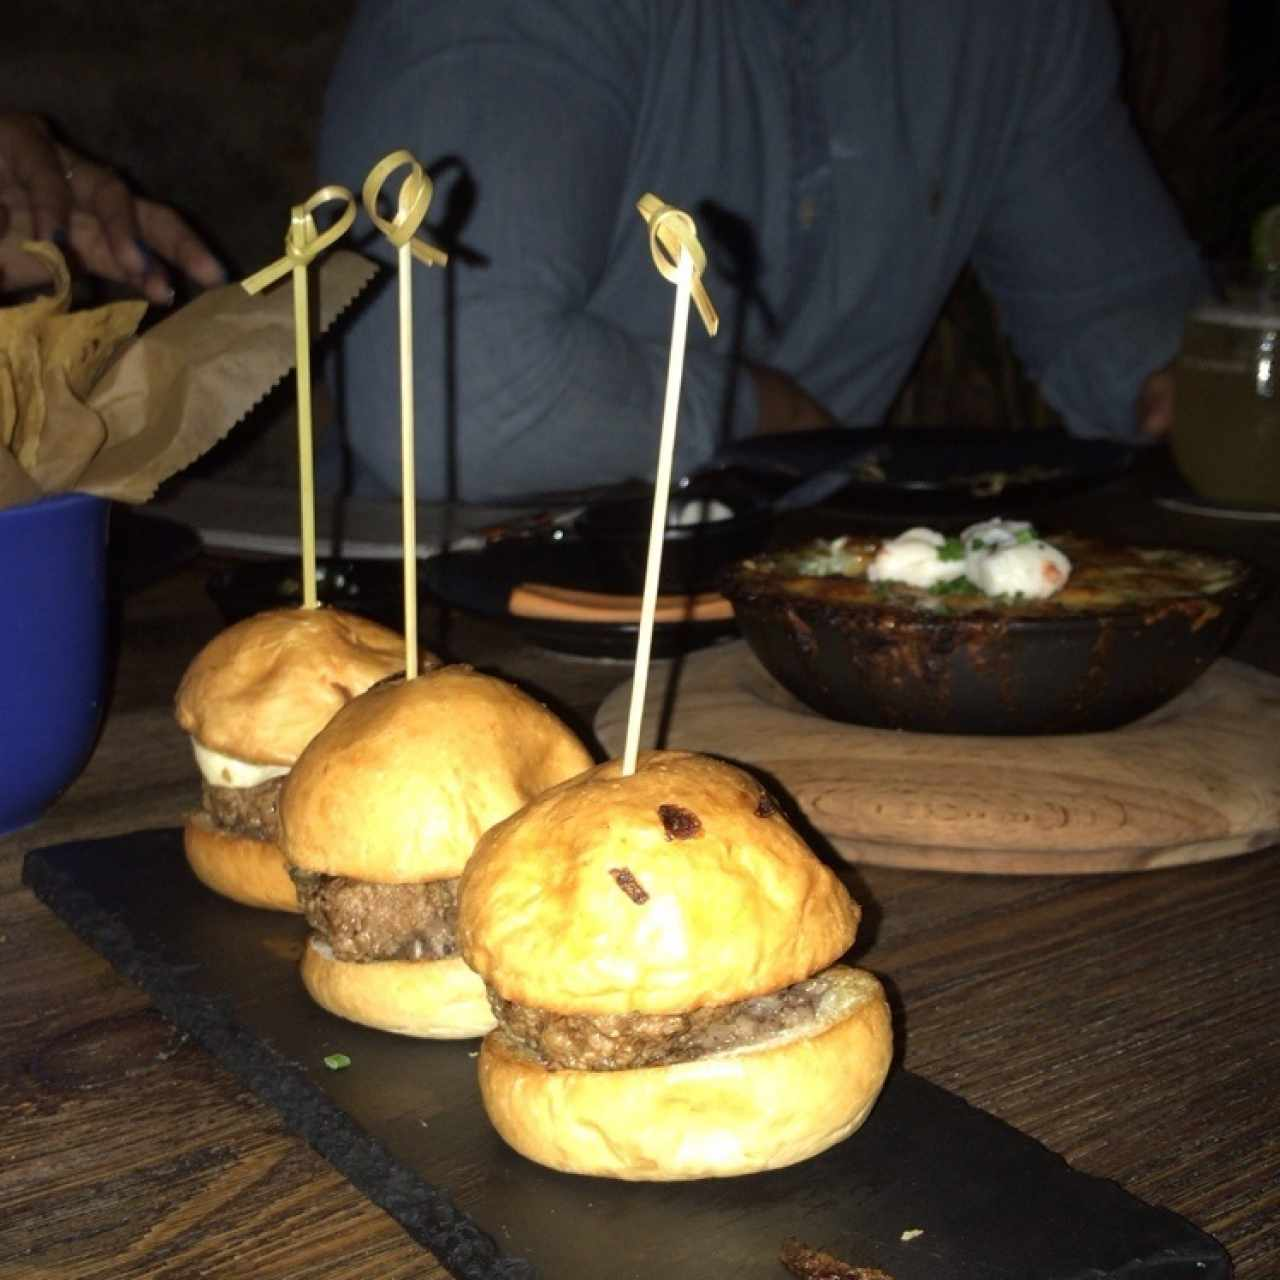 SMALL PLATES - Sliders